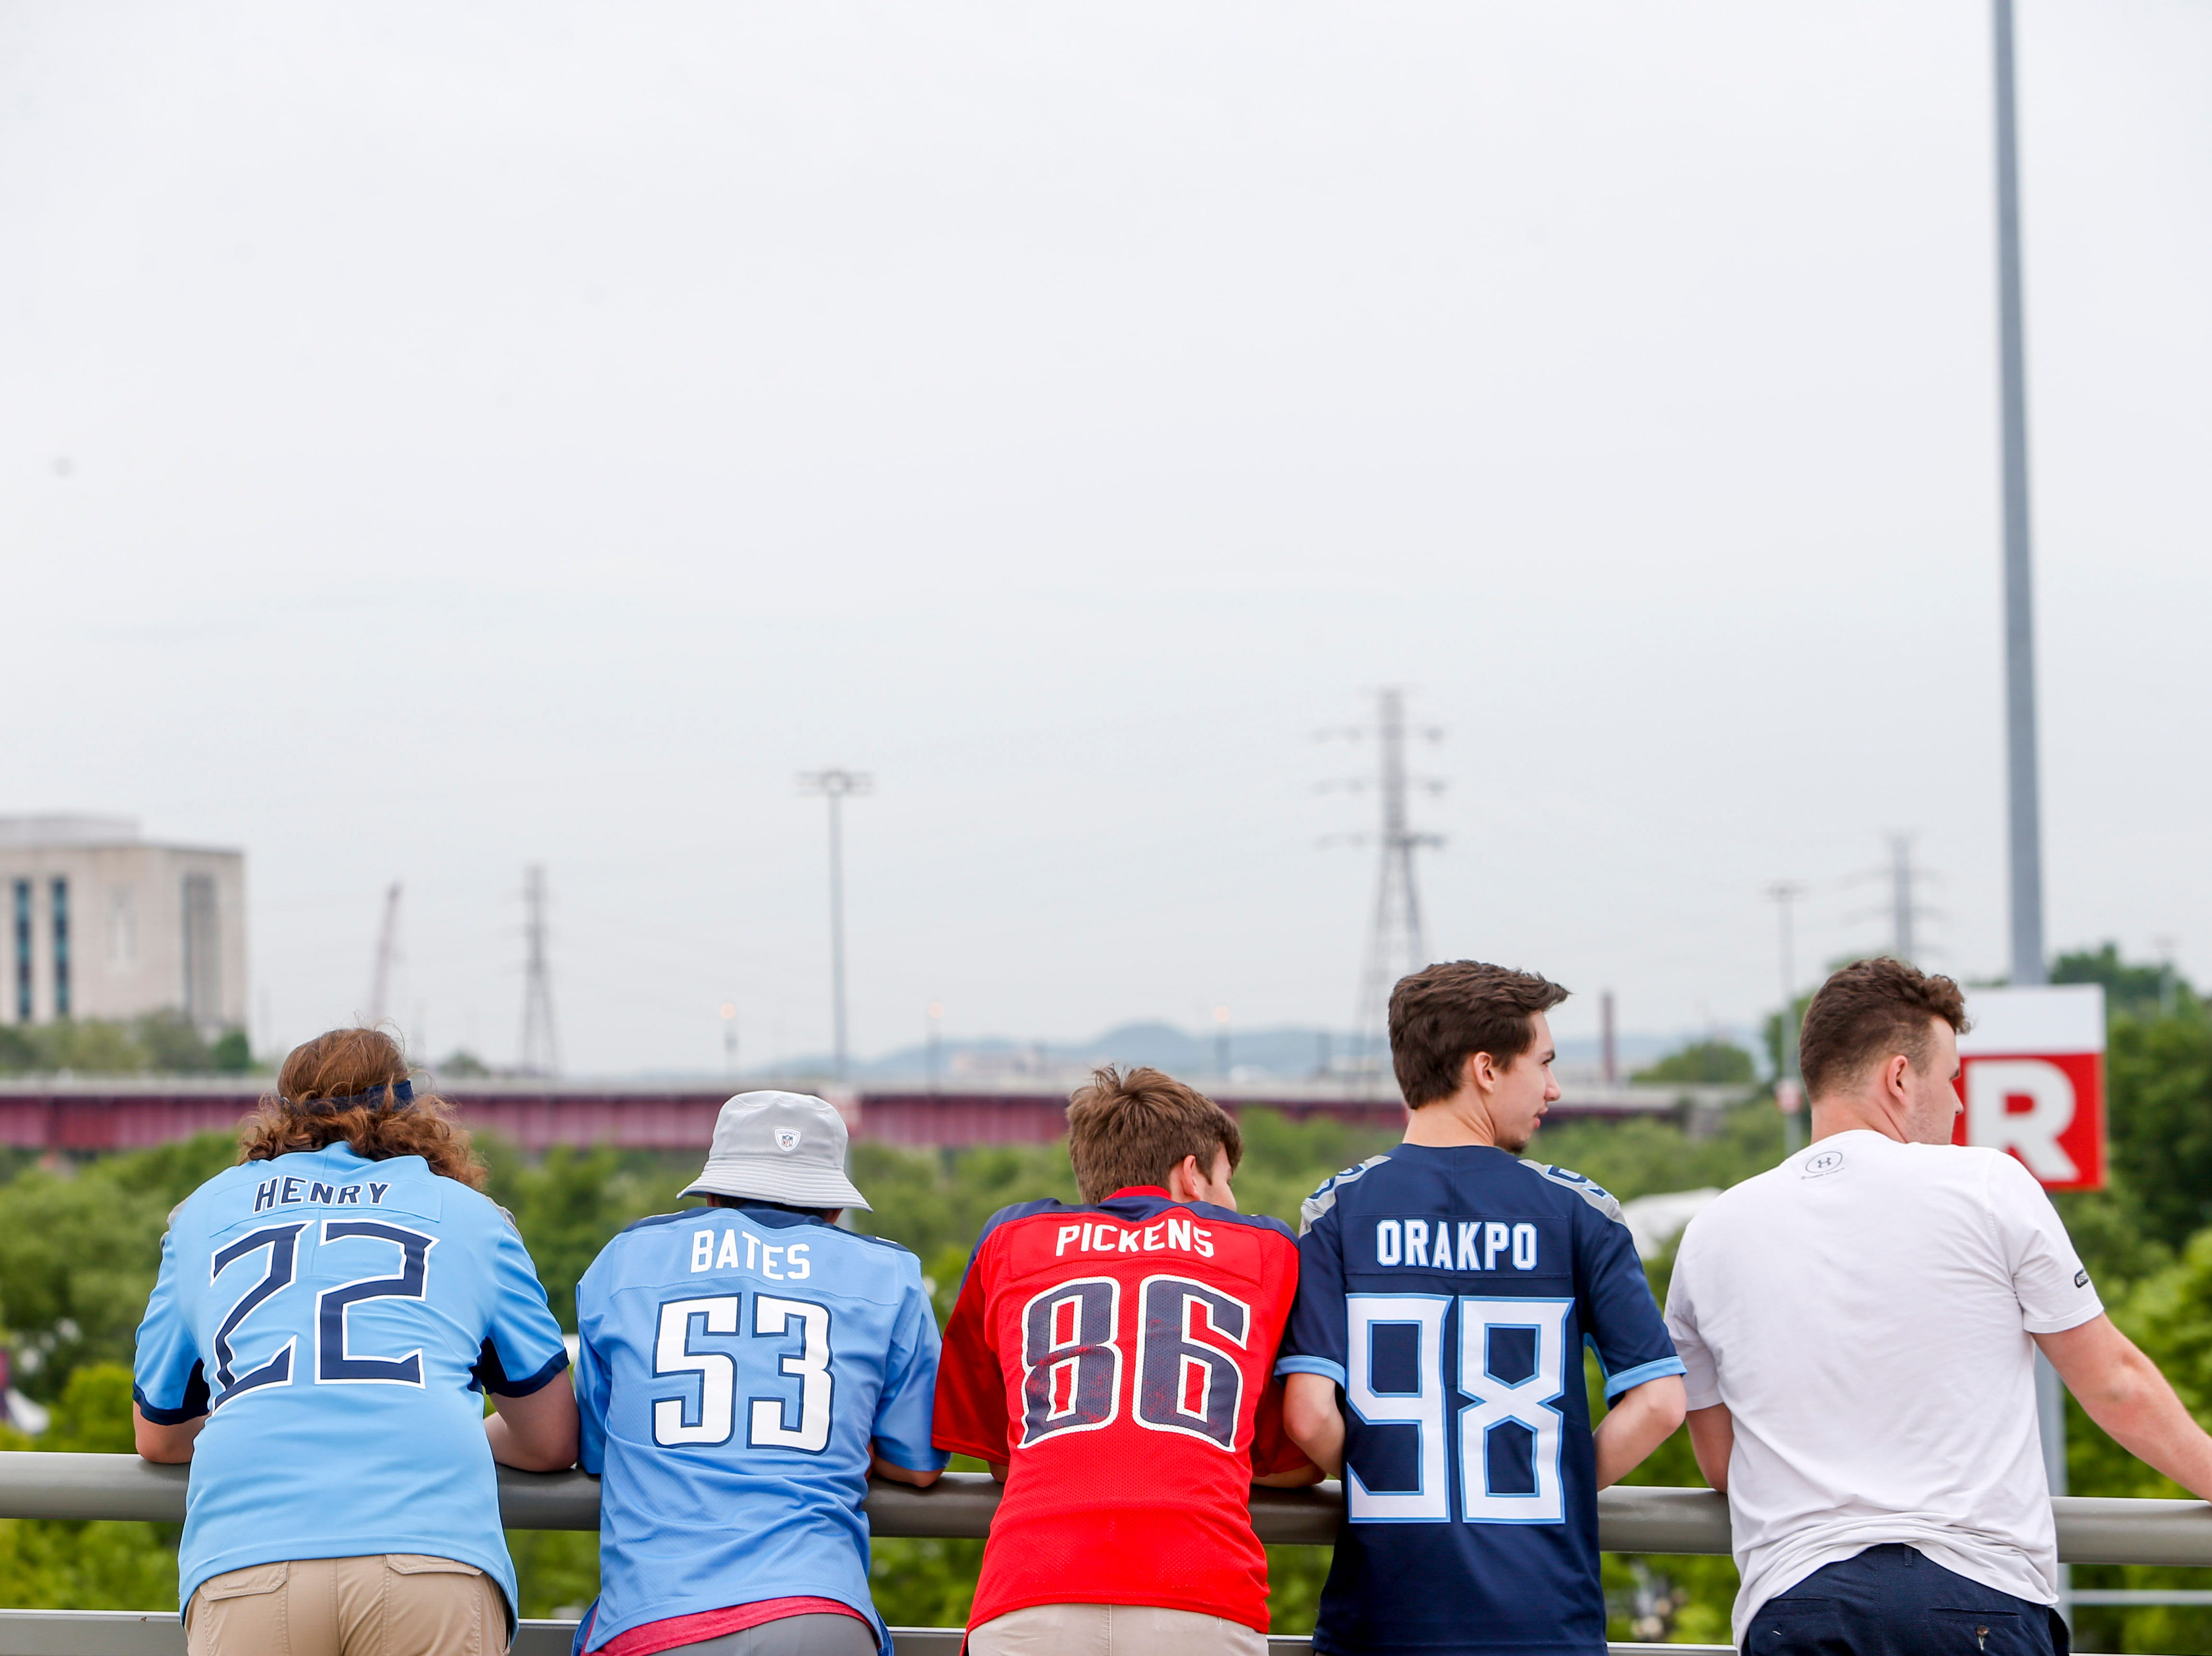 Fans line up at the railing of the bridge during the NFL Draft Experience at Nissan Stadium in Nashville, Tenn., on Thursday, April 25, 2019.